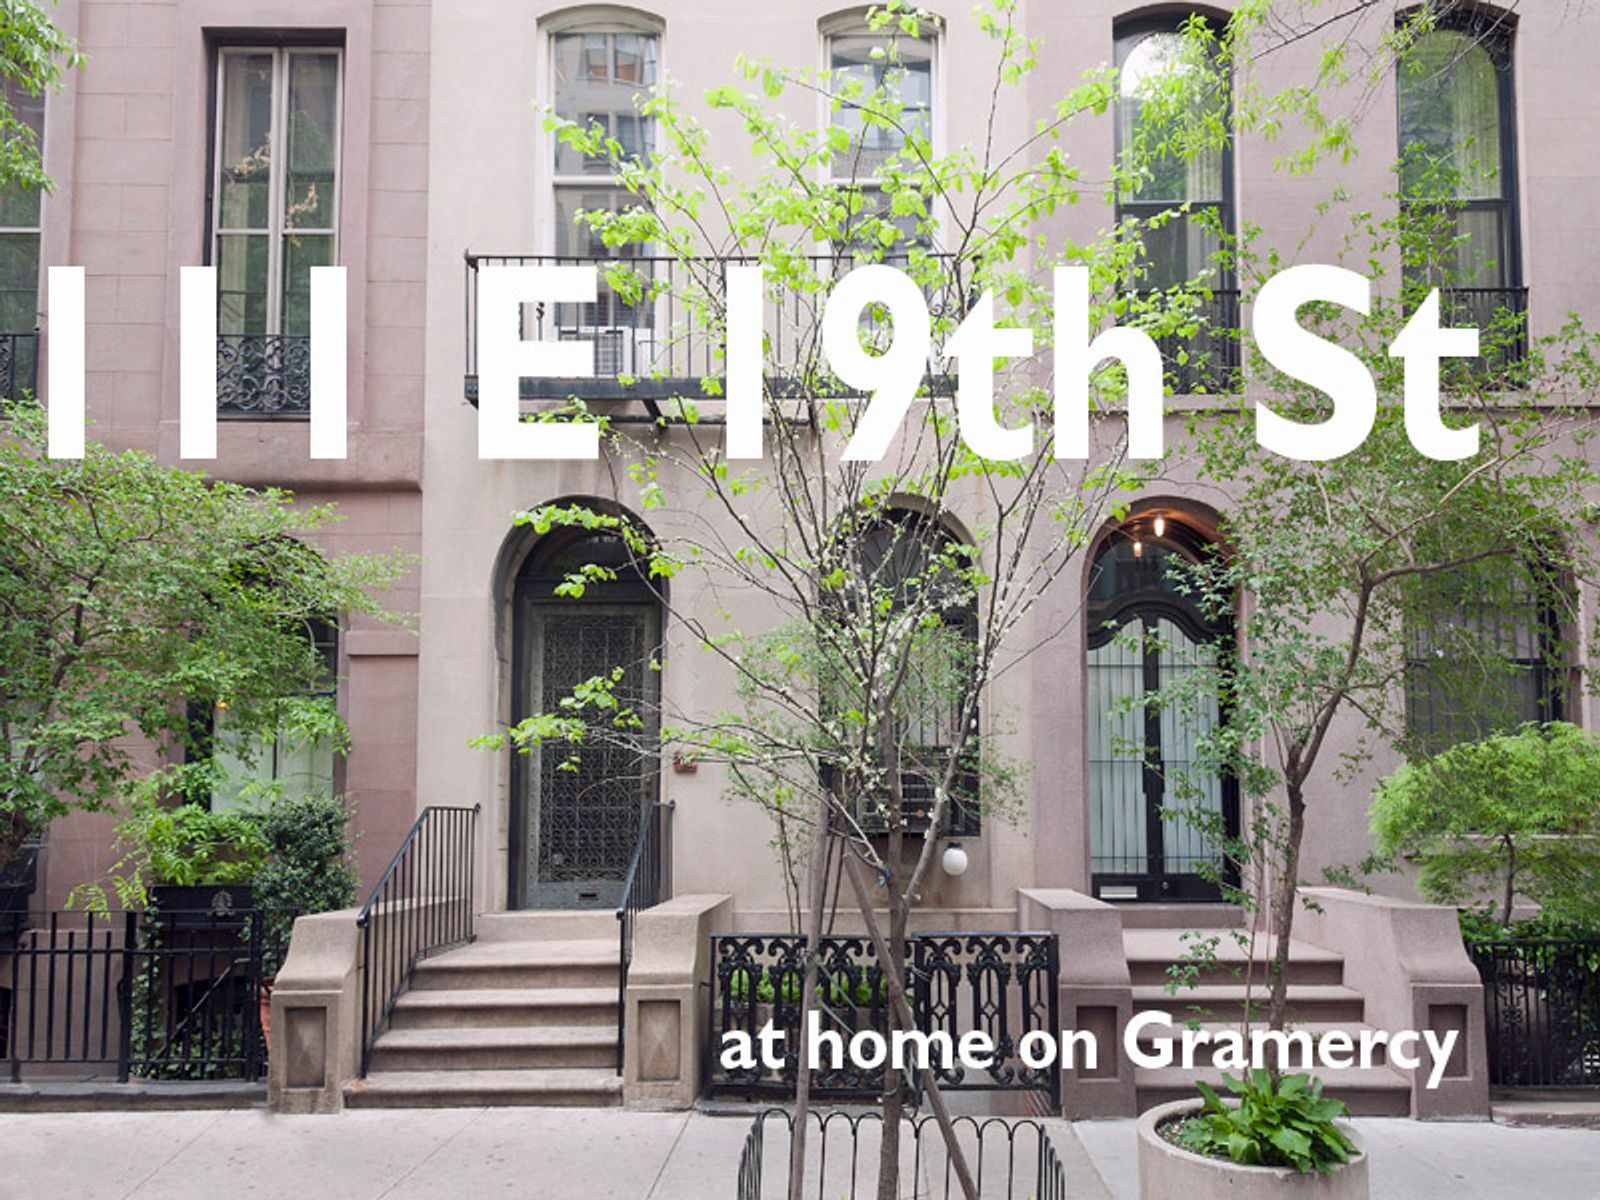 At Home on Gramercy